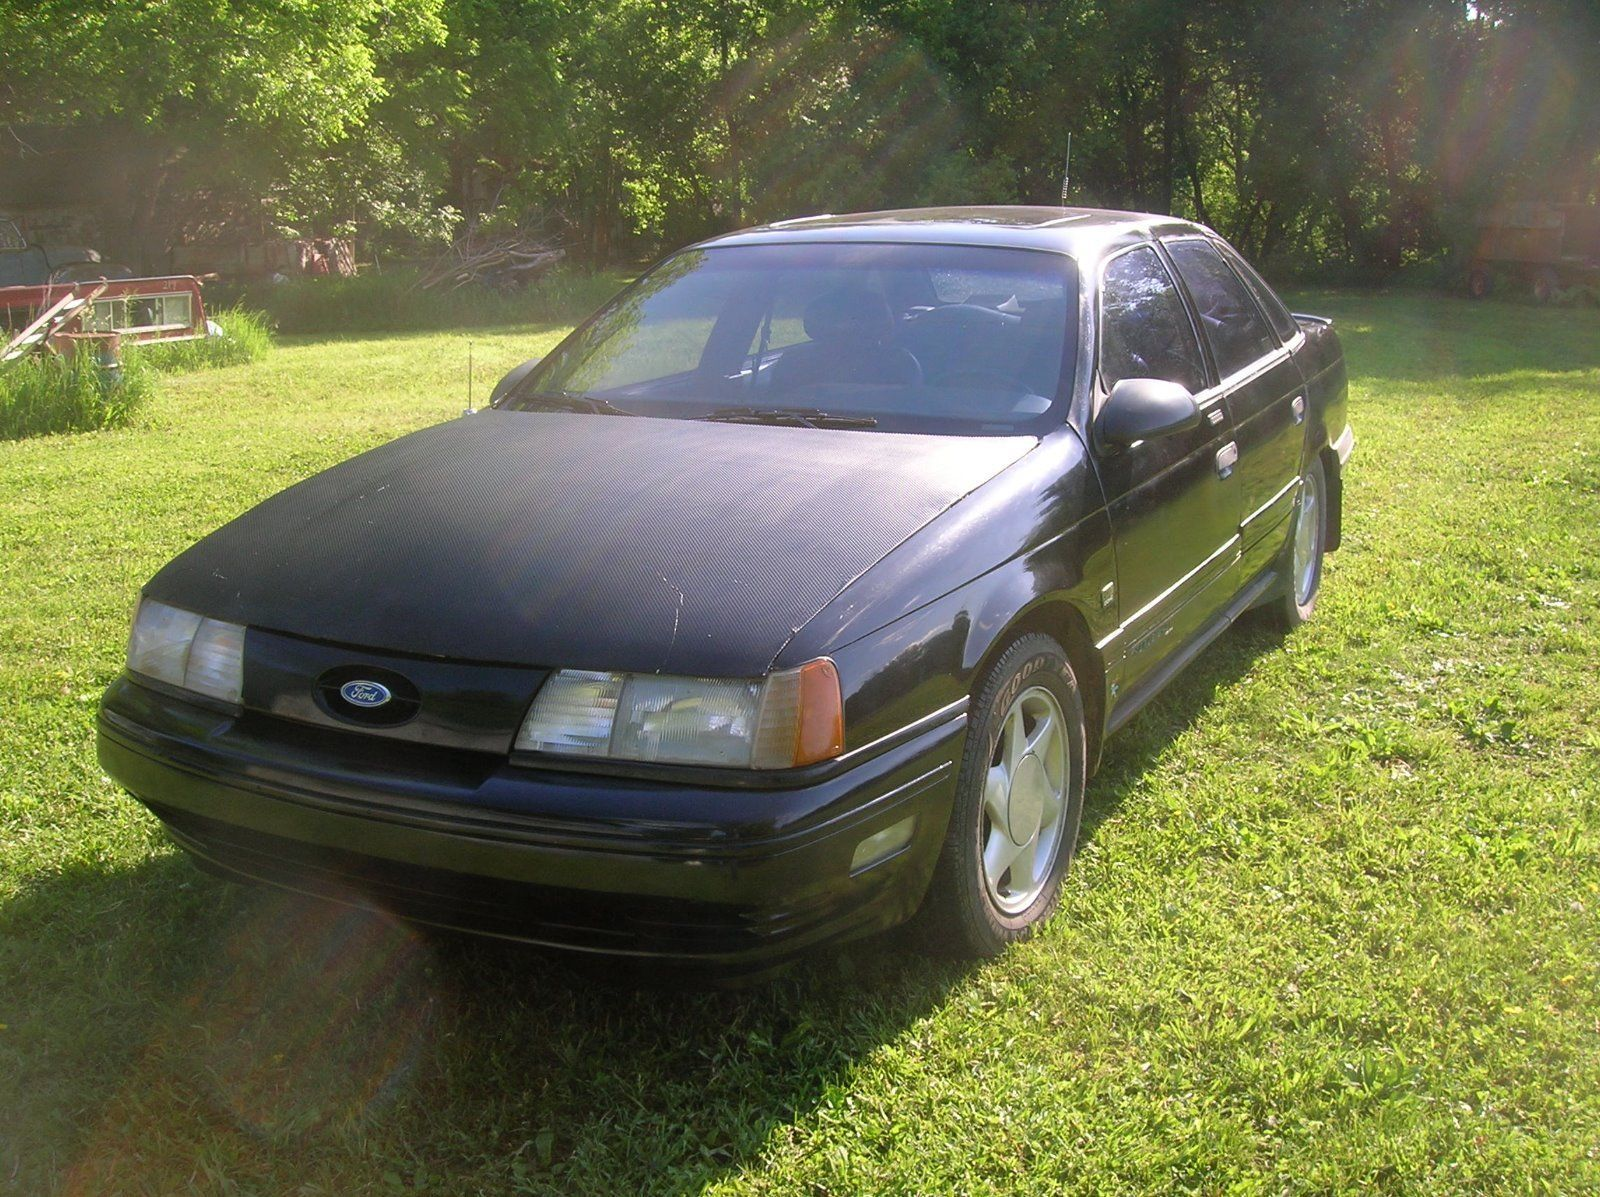 Crate Engine Replacement 1991 Ford Taurus Sho Ford Taurus Sho Crate Engines Ford Classic Cars